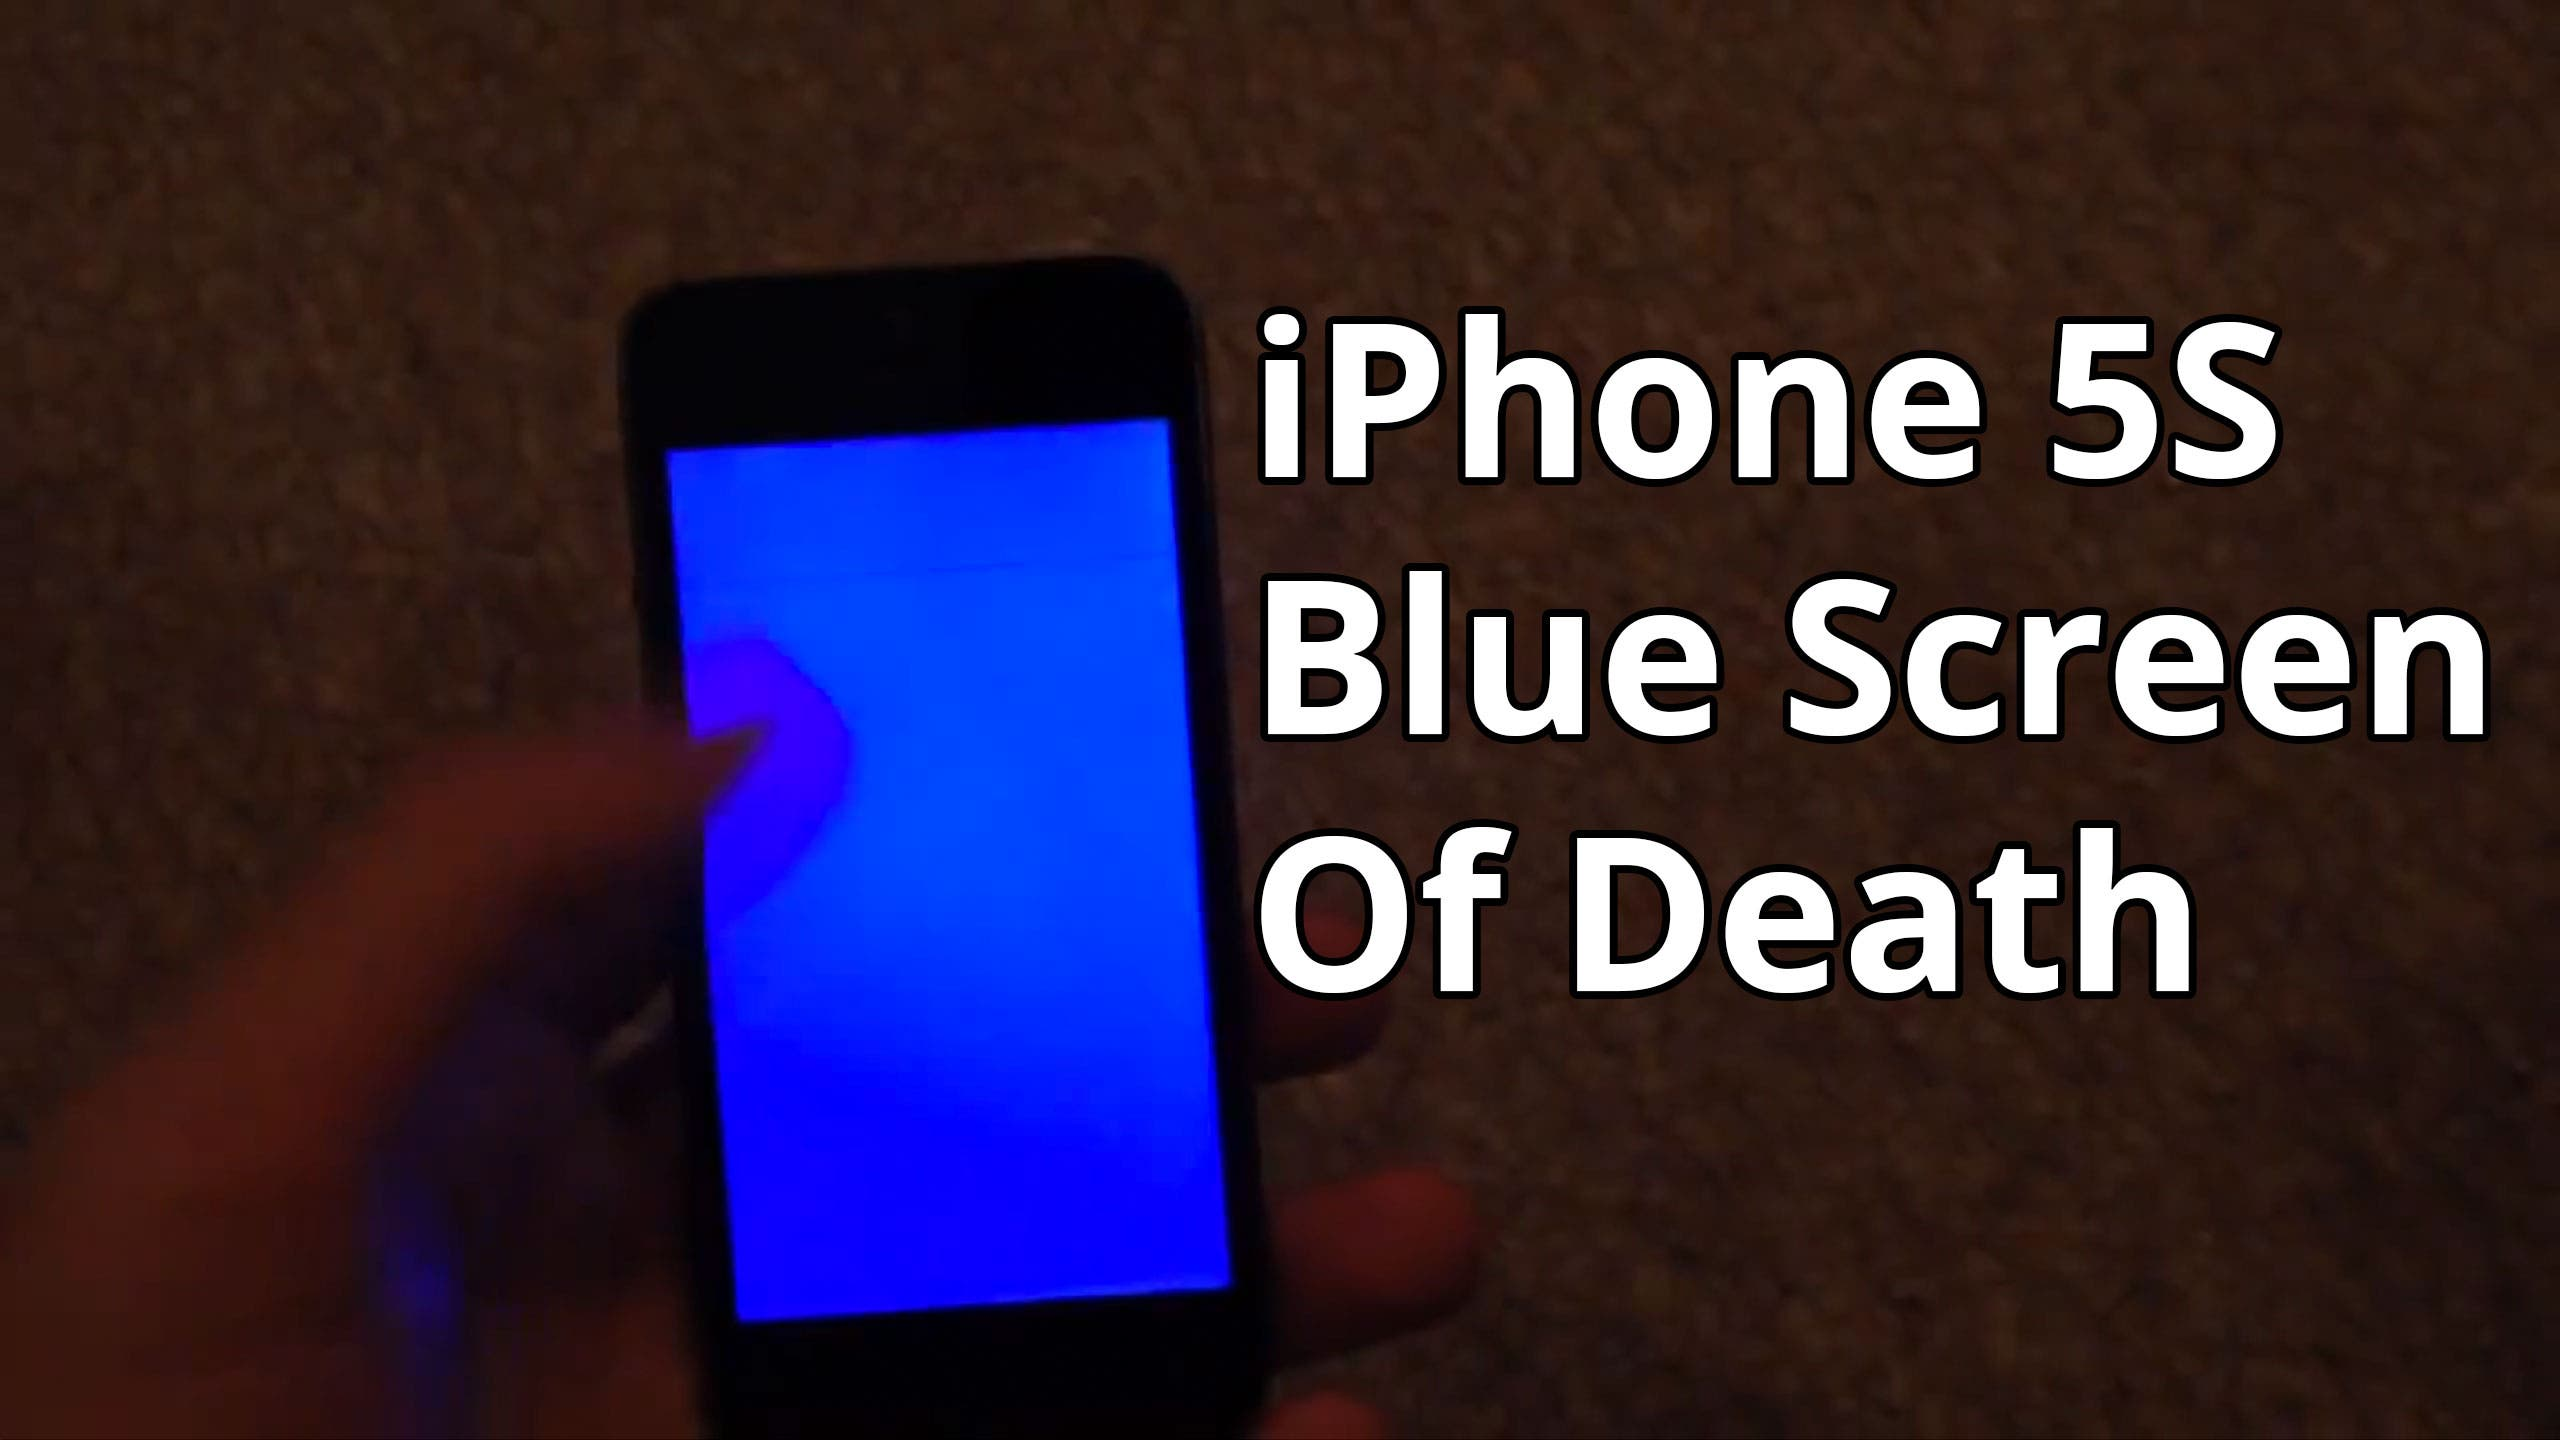 iphone blue screen iphone 5s blue screen of mobilegeeks de 11658